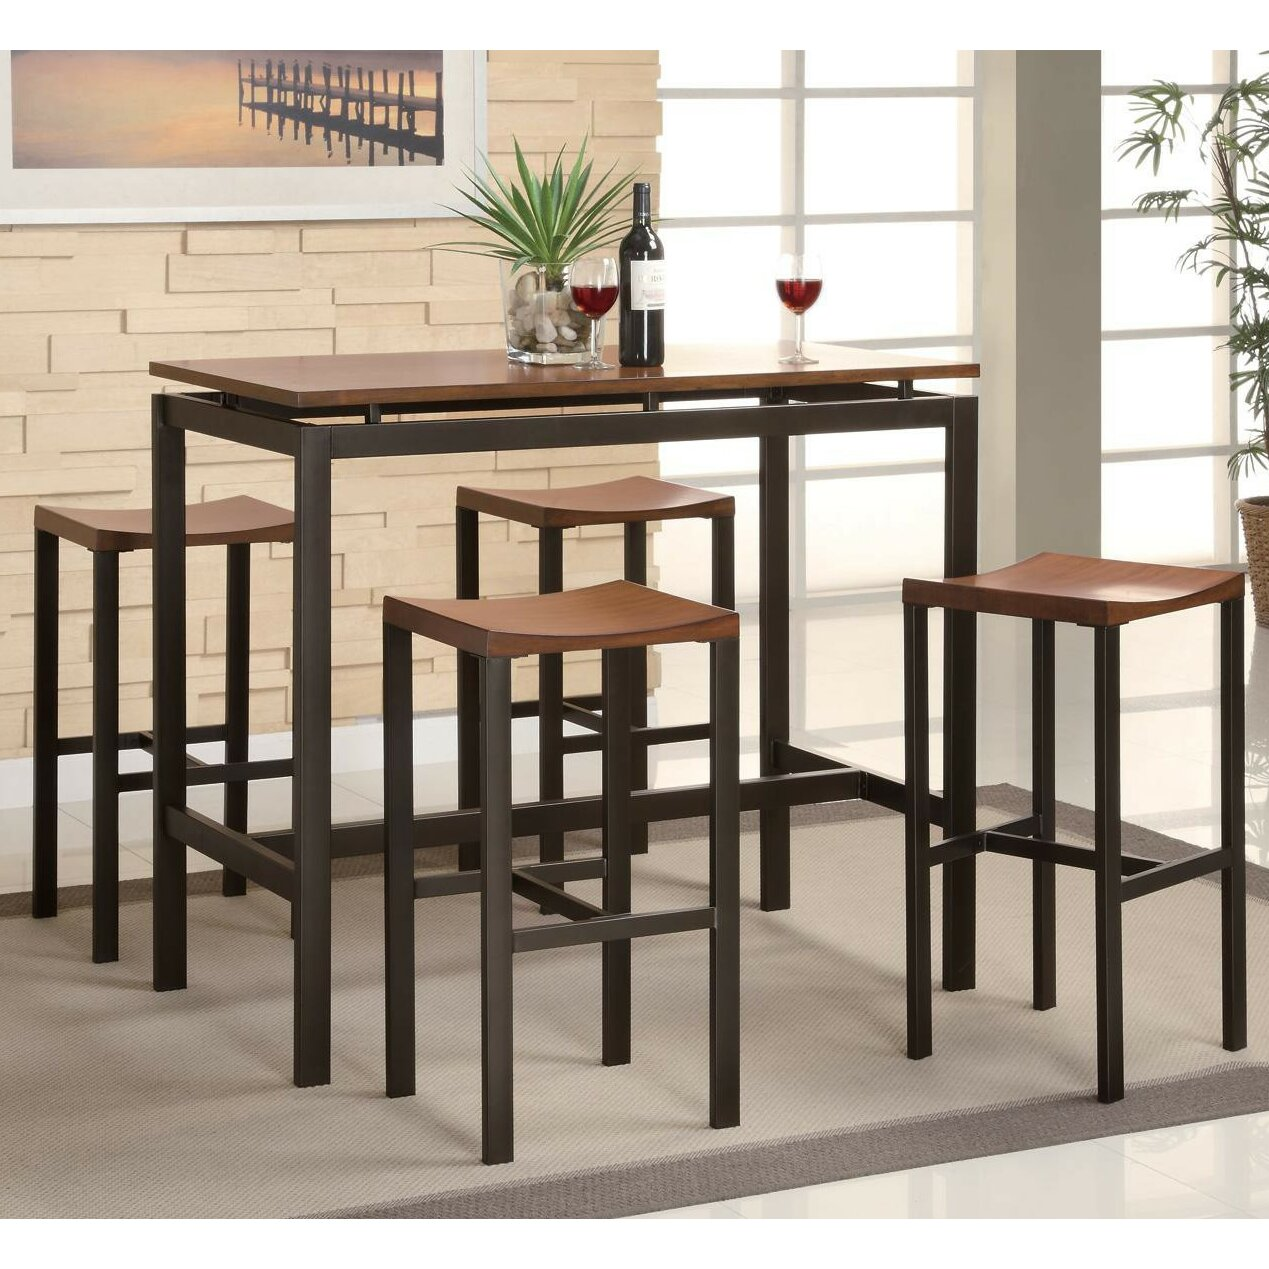 swigart 5 piece pub table set - Kitchen Bar Table Set